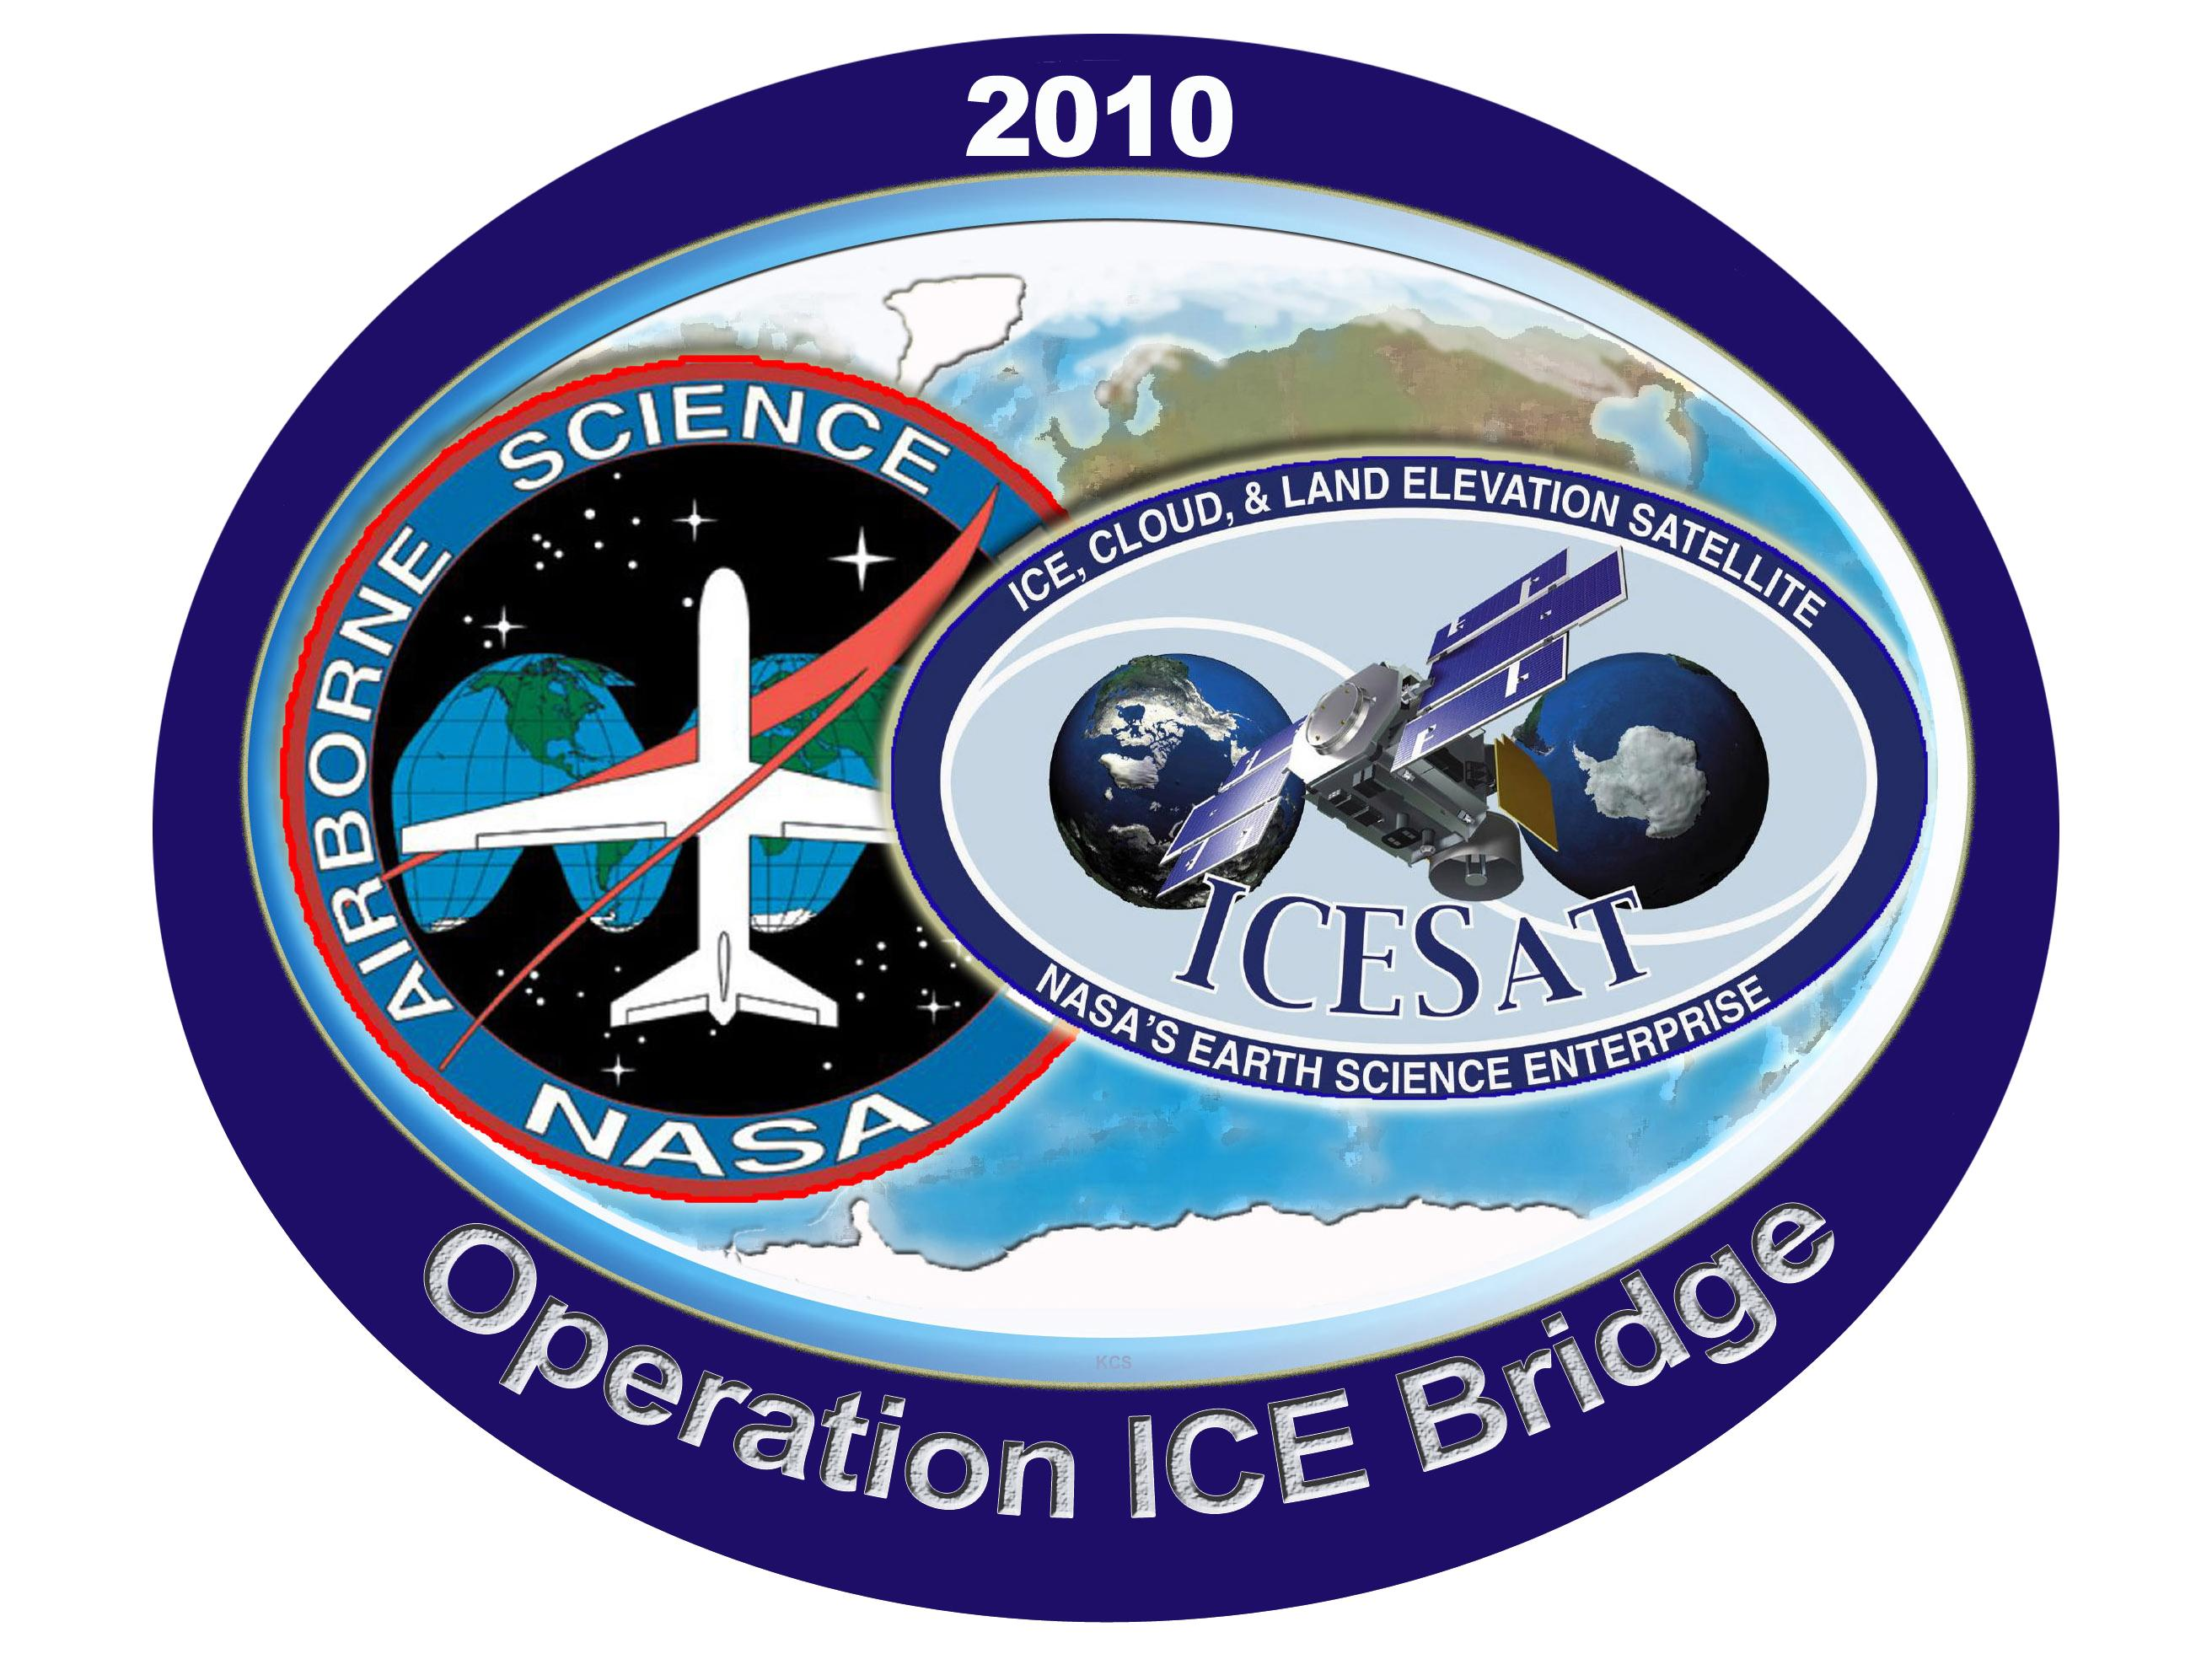 Logo for the IceBridge Mission